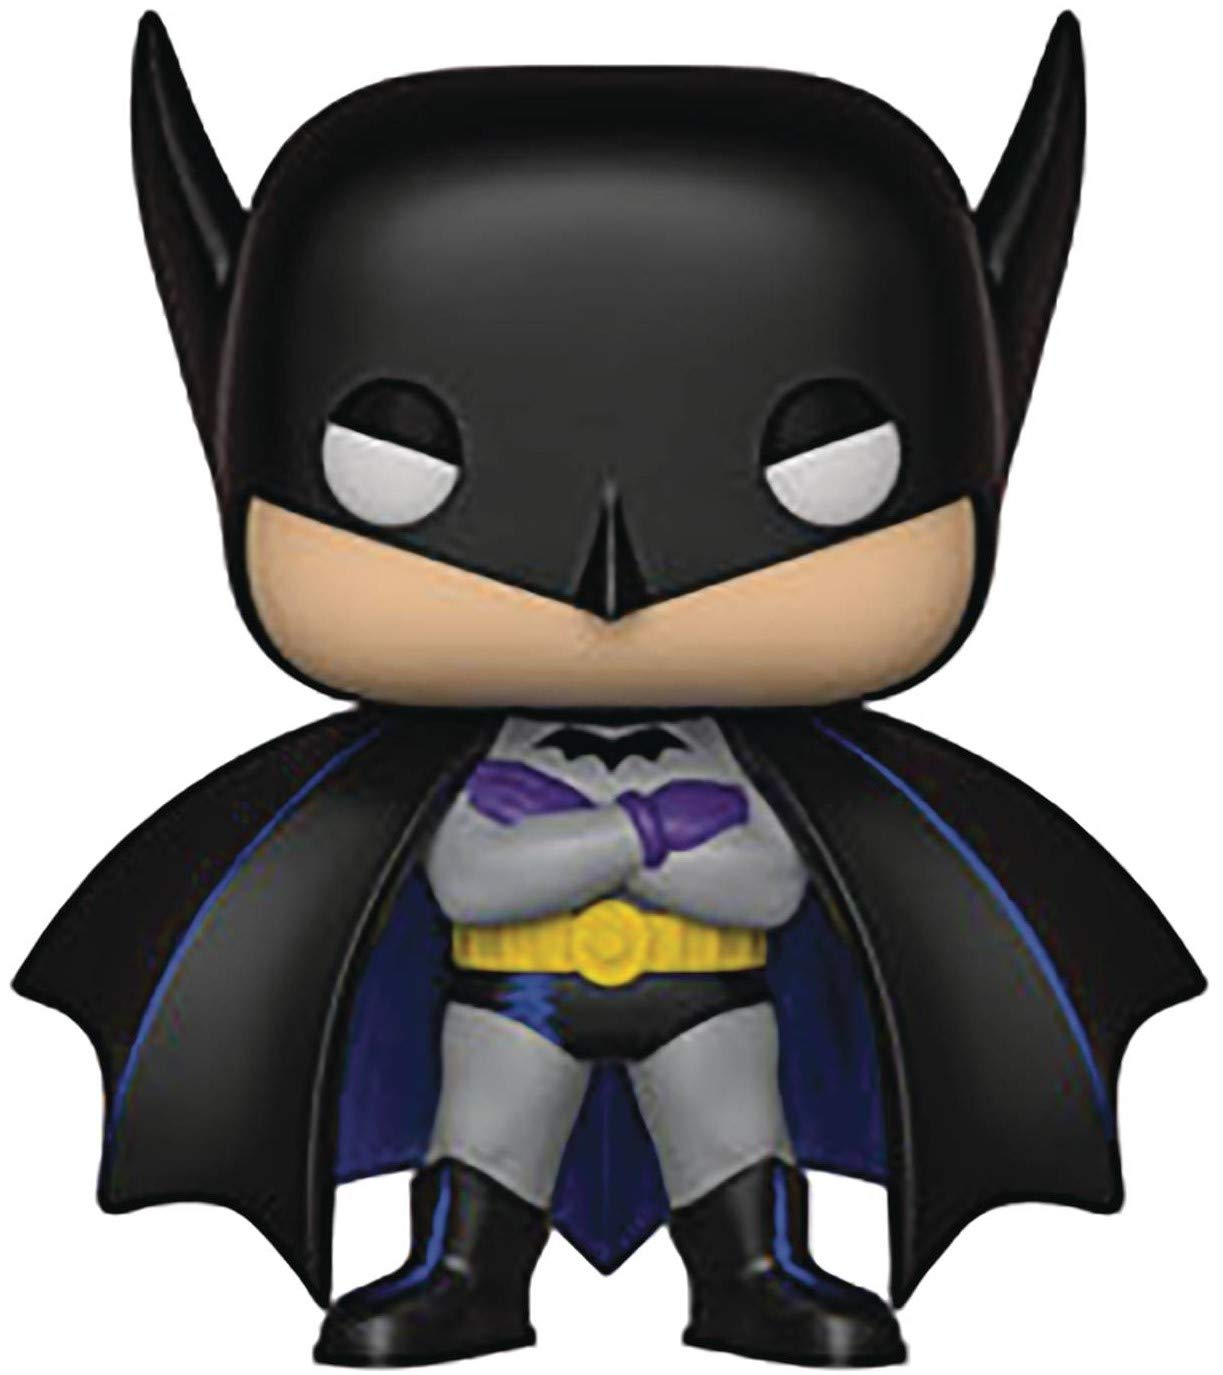 Funko Pop Batman 1st Appearance DC Comics Heroes: Batman 80th Vinyl Figure 1939 Includes Compatible Pop Box Protector Case